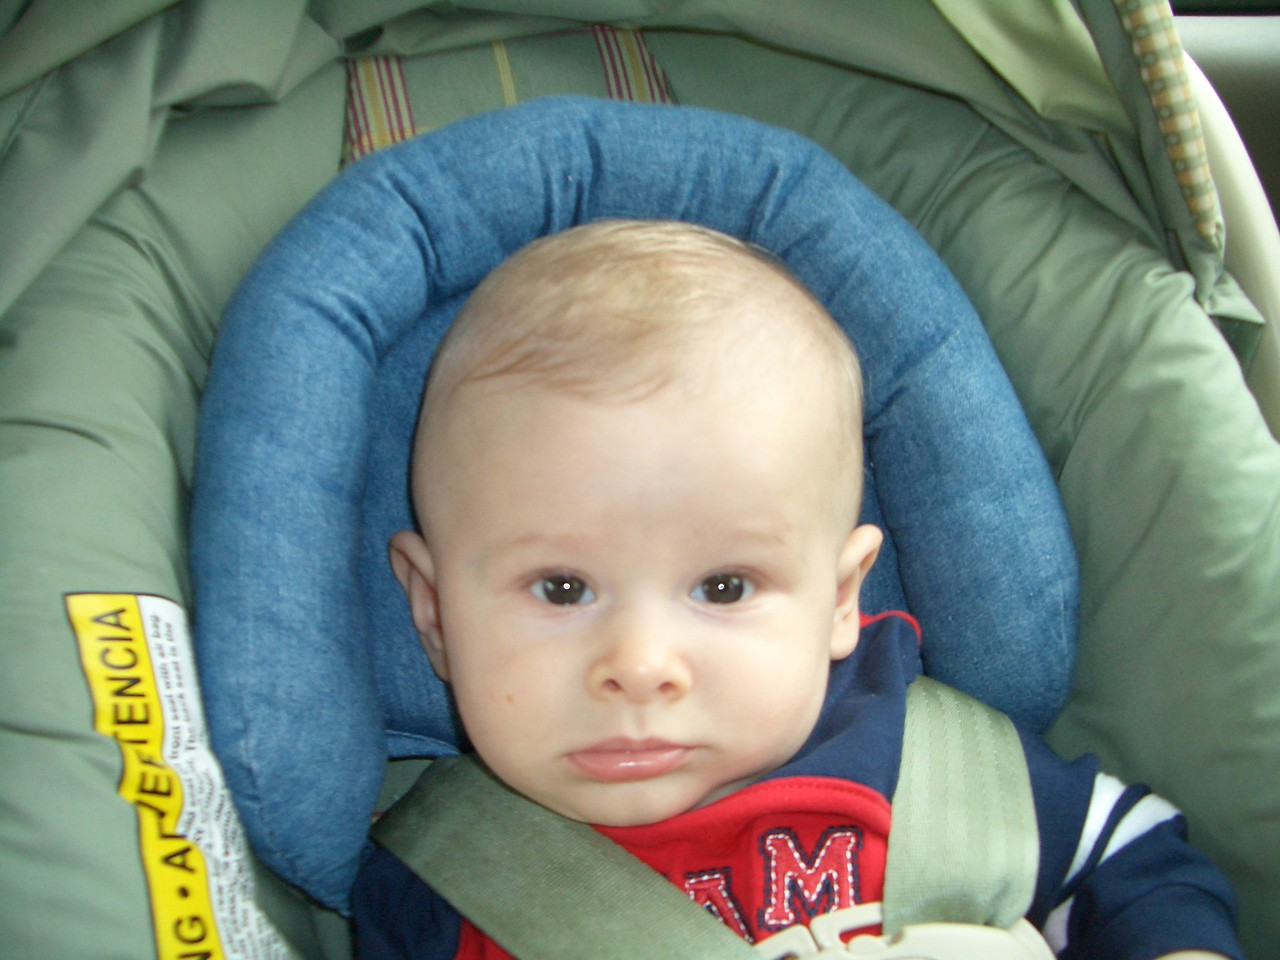 8/18 Cody in car seat